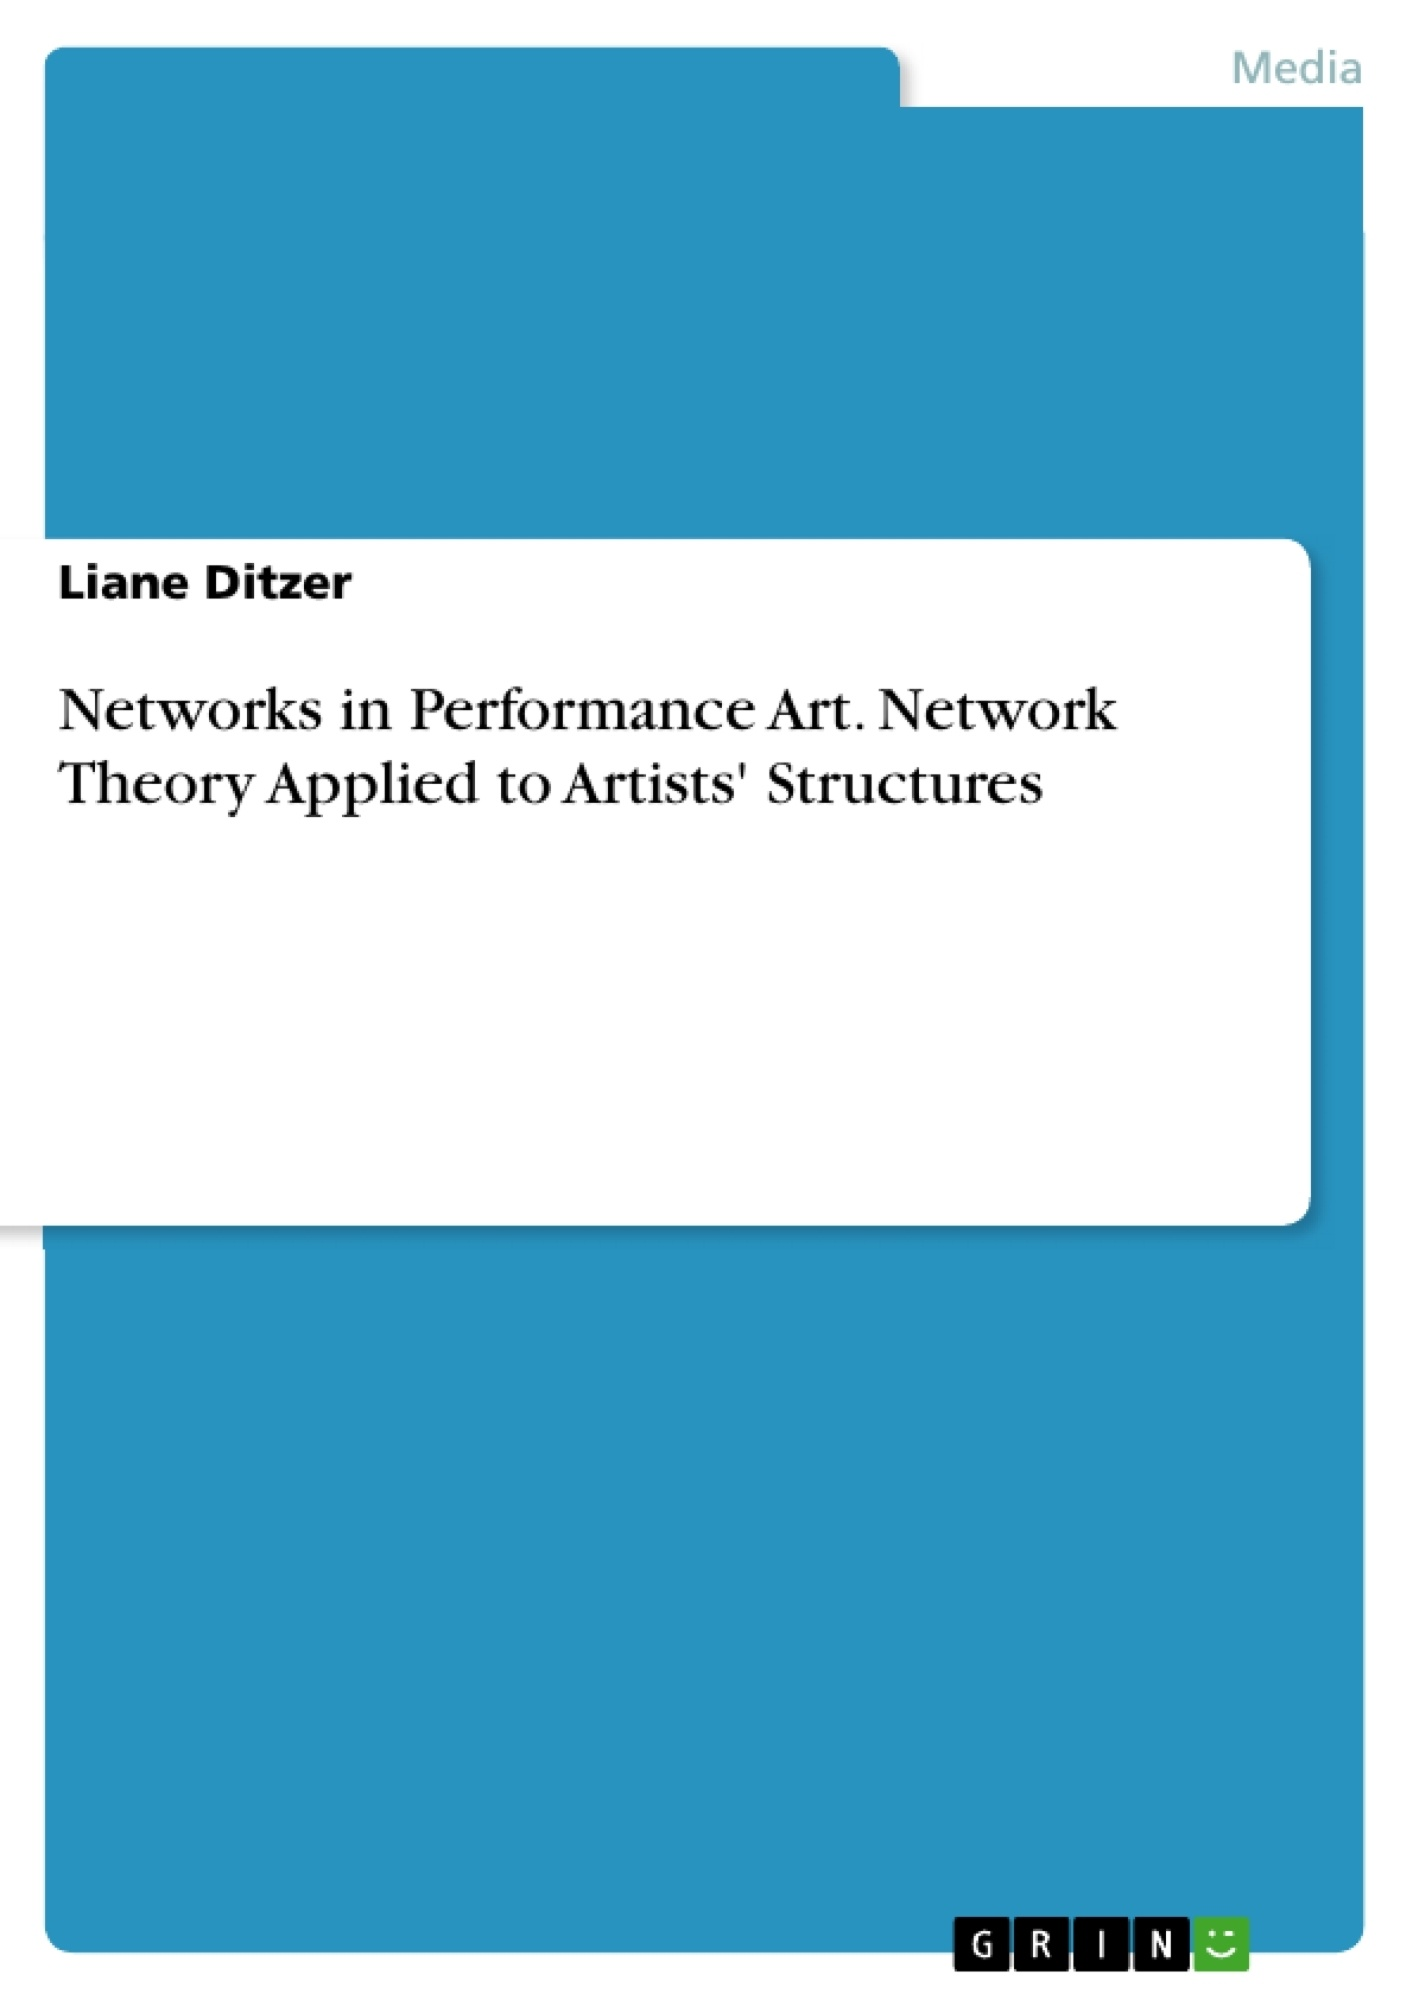 Title: Networks in Performance Art. Network Theory Applied to Artists' Structures